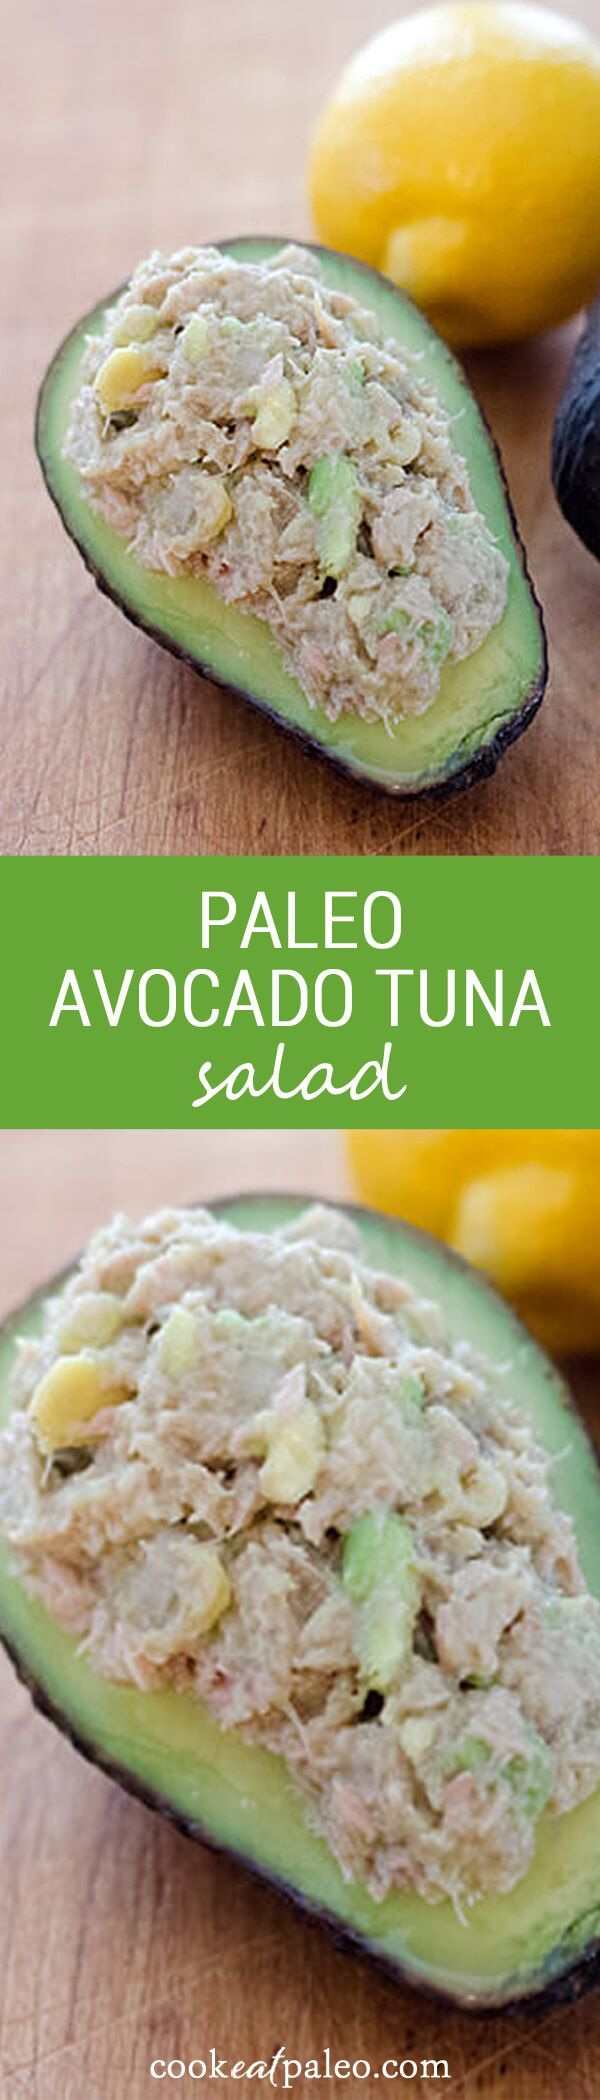 Paleo avocado tuna salad is an easy gluten-free lunch or snack recipe in 5 minutes with just 4 essential ingredients. Love it! Who needs mayo when you've got avocado and lemon?!